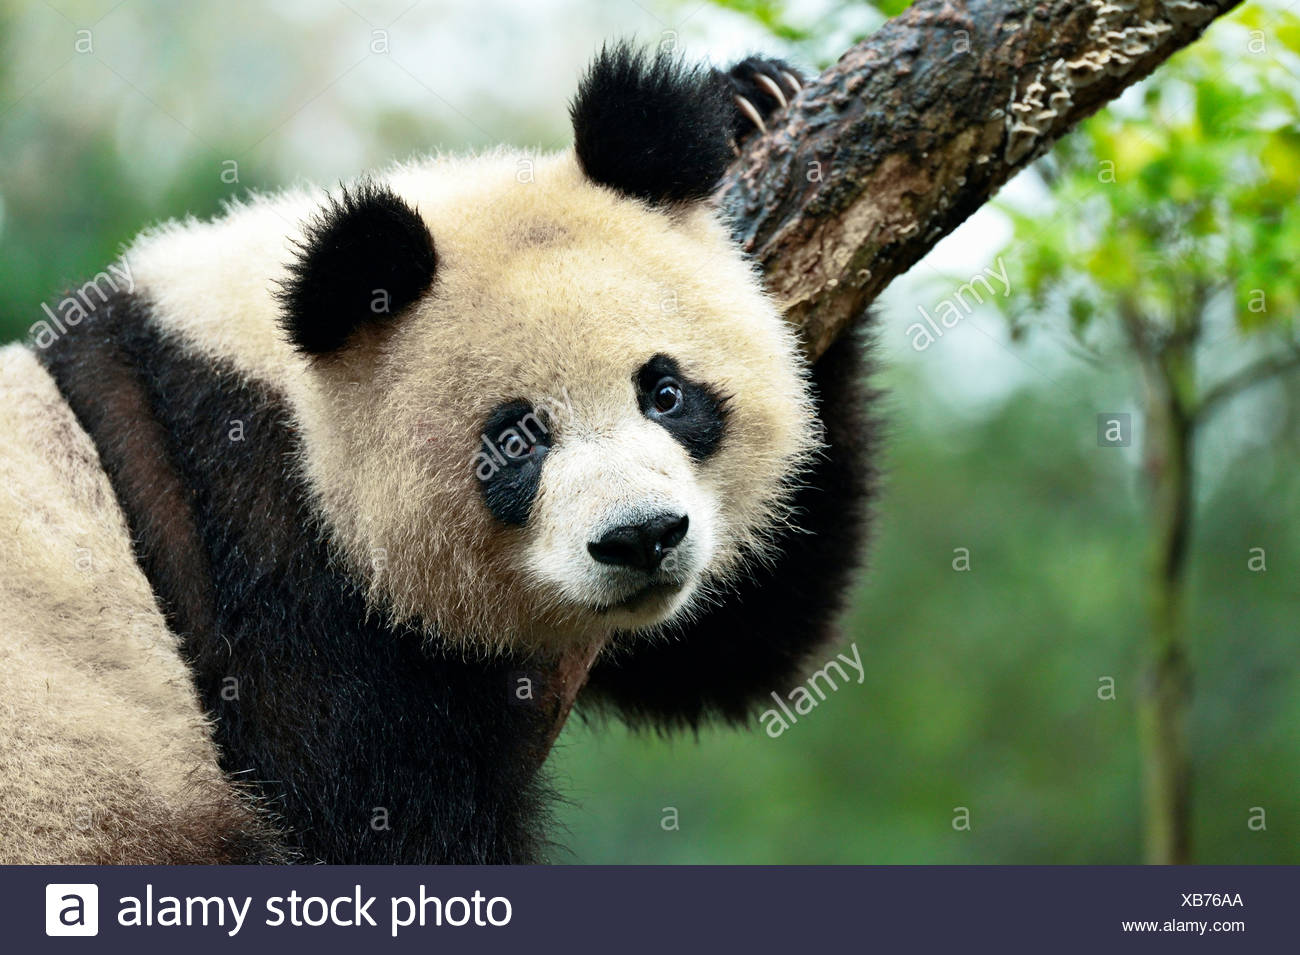 Panda géant (Ailuropoda melanoleuca) perché sur un arbre, captive, Chengdu Research Base de reproduction du Panda Géant ou Chengdu Panda Photo Stock